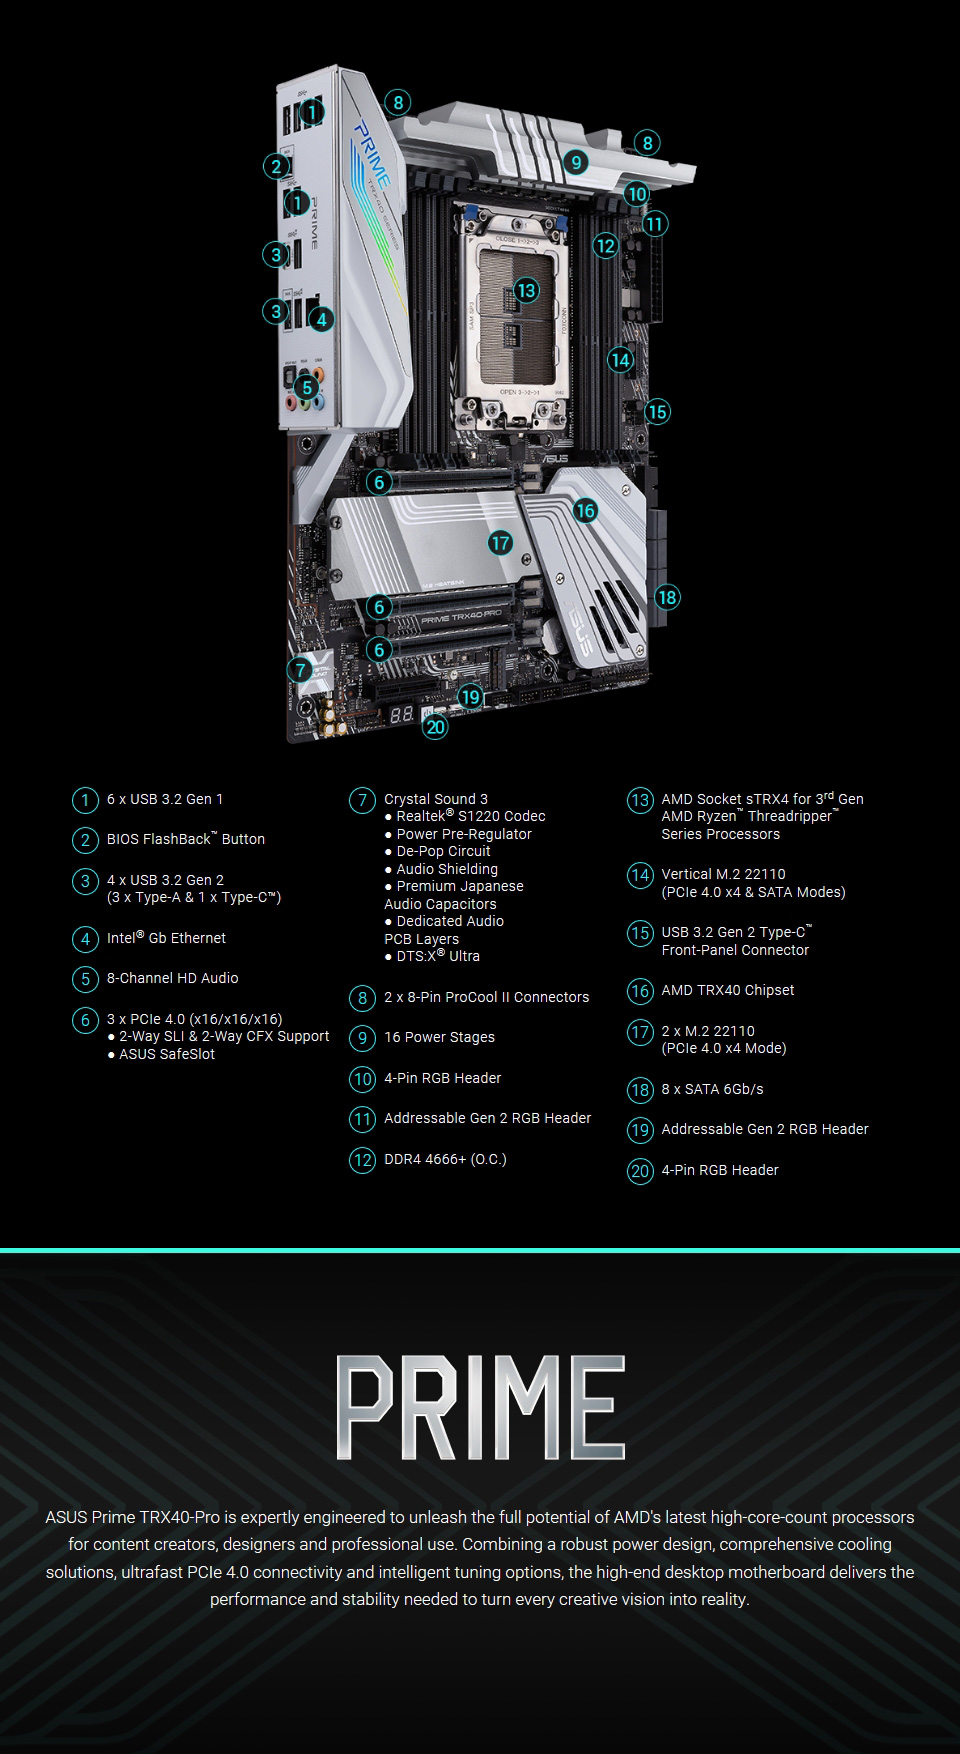 ASUS Prime TRX40 Pro Motherboard features